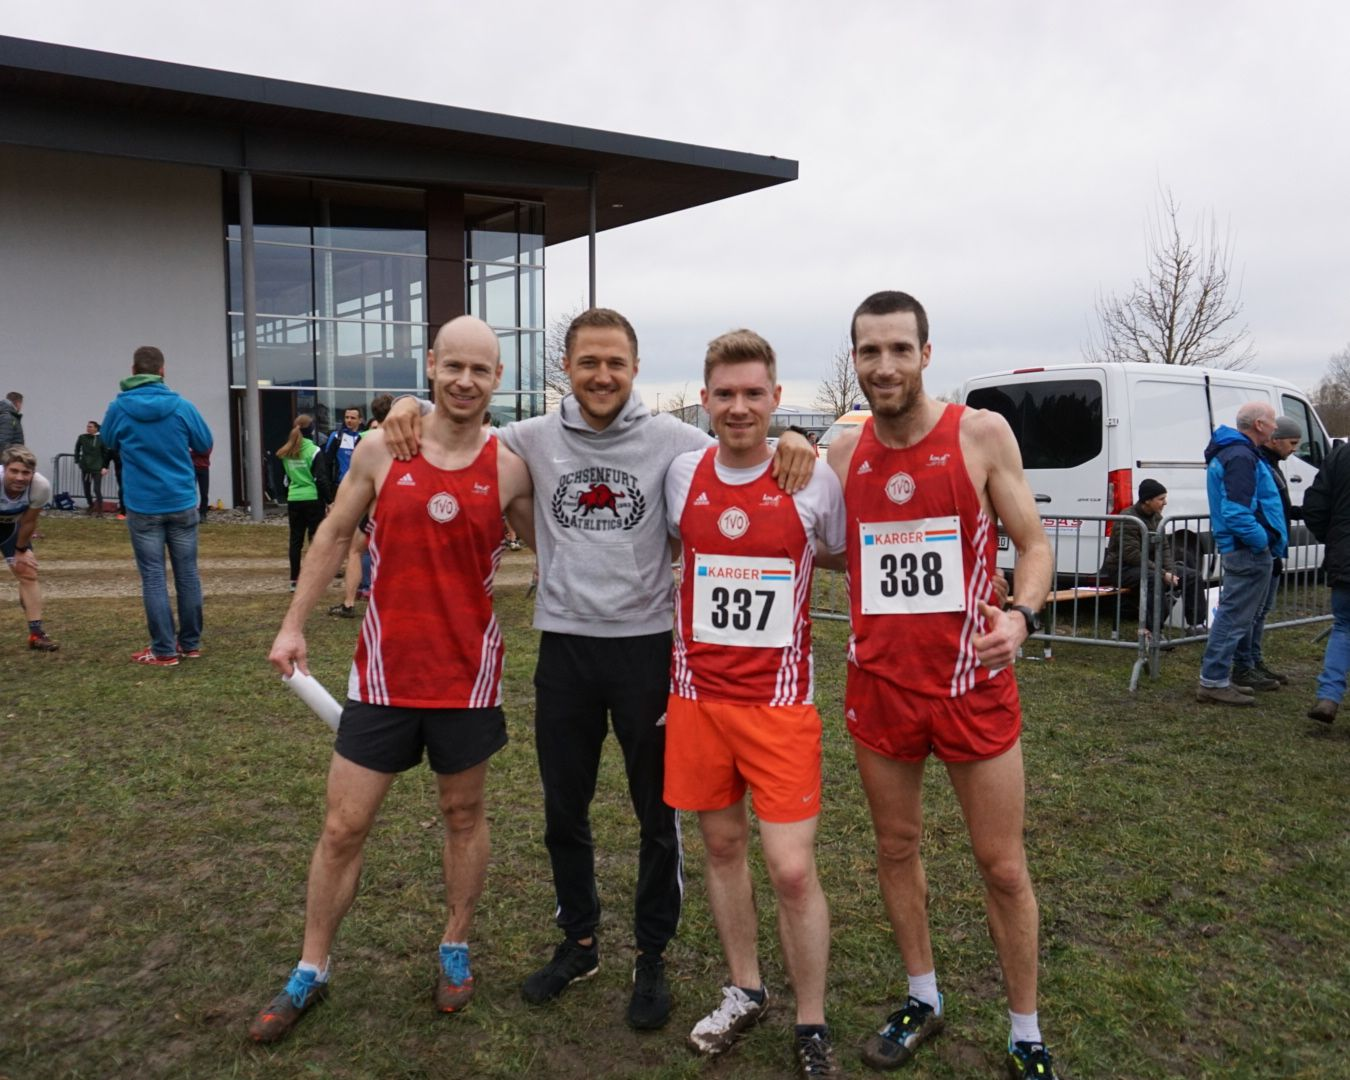 BLV Cross Buttenwiesen 2020